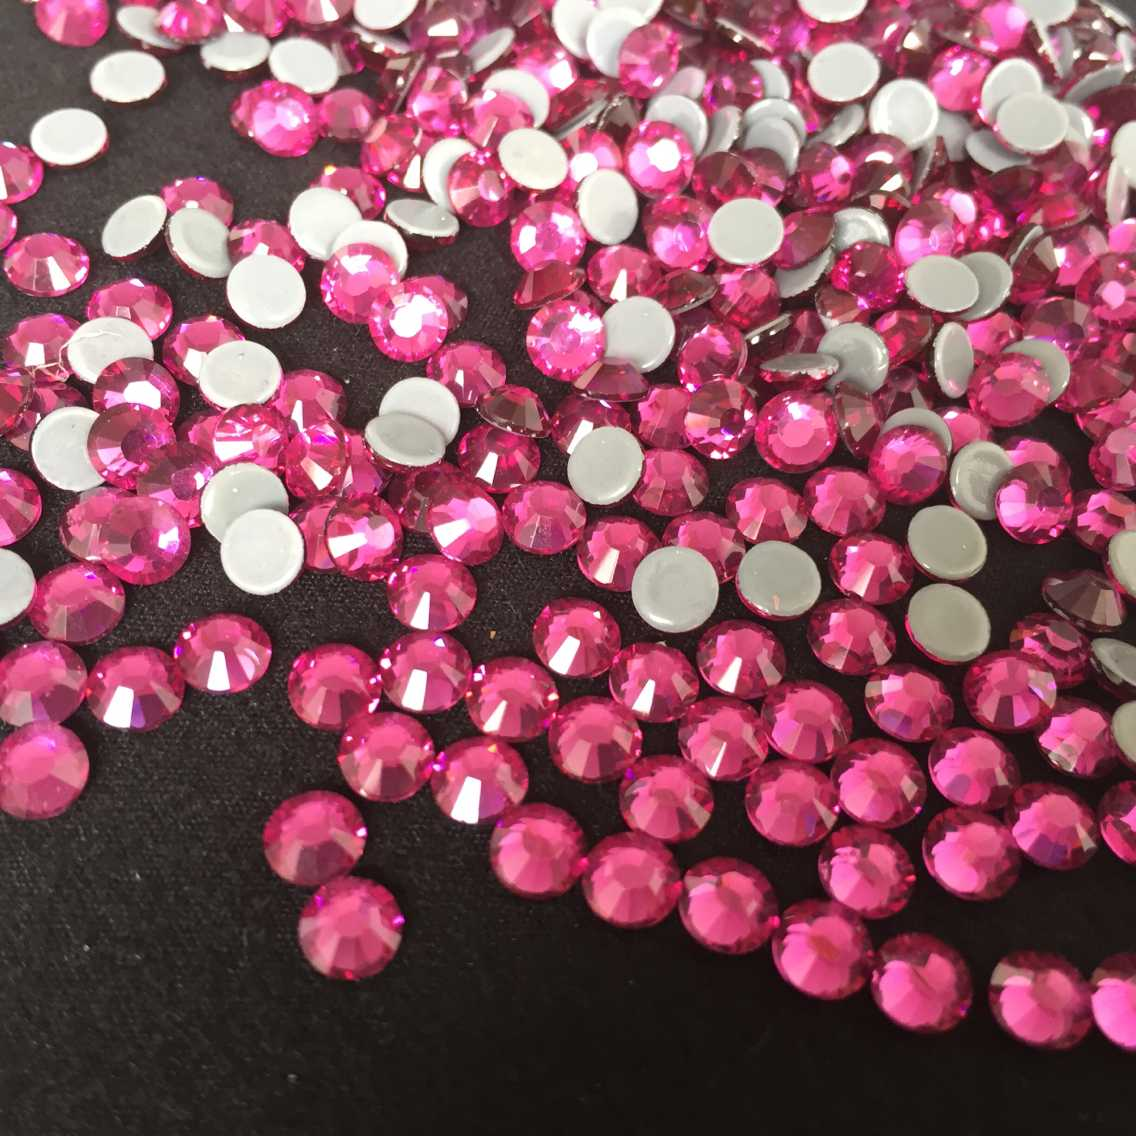 Jpstrass-Find Hotfix Rhinestones For Sale Hot Fix Stone From Jp Strass-2